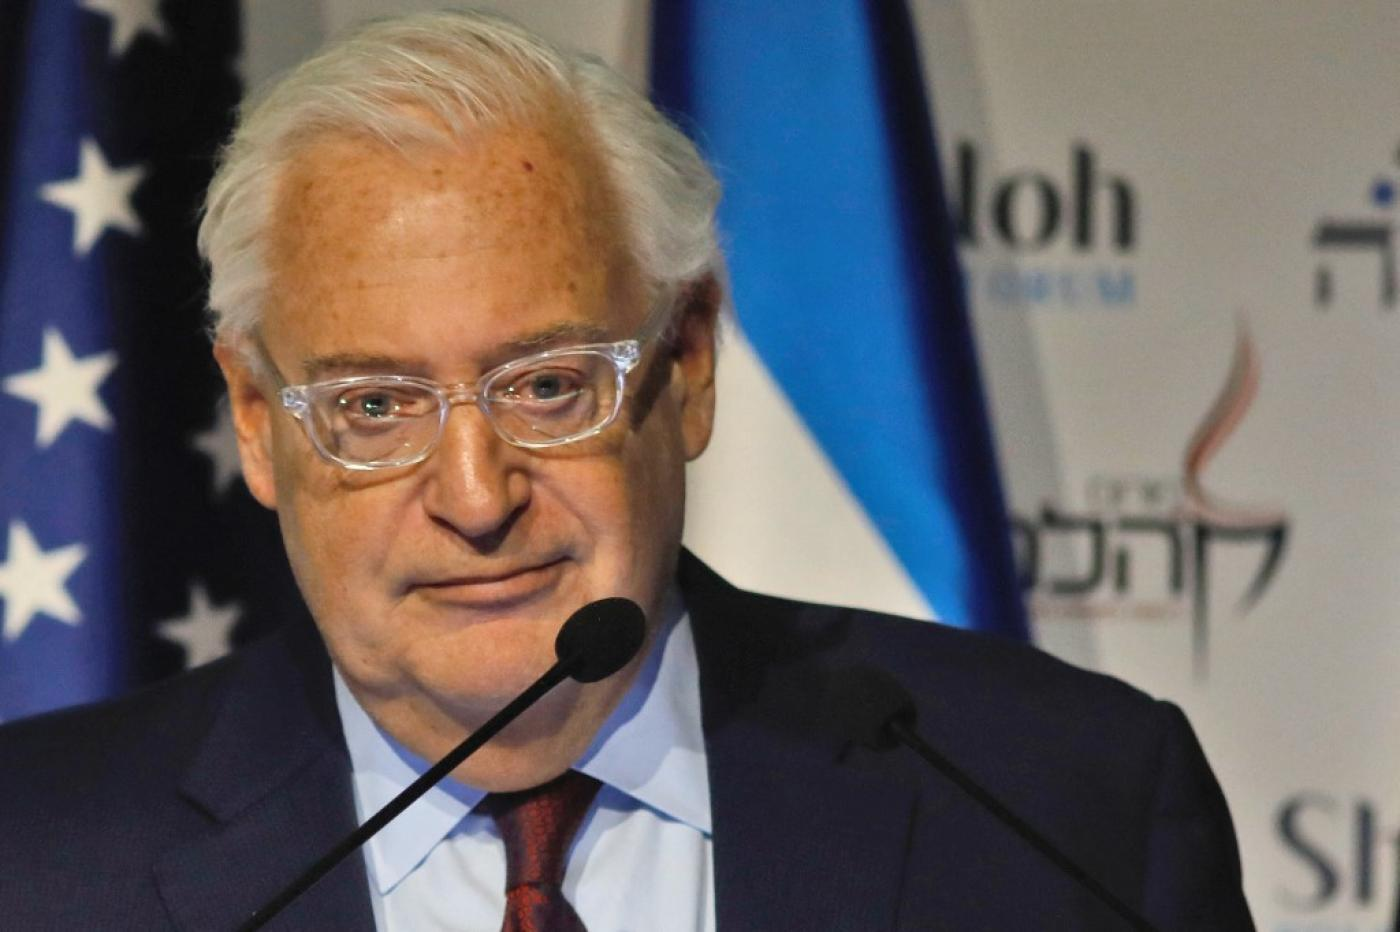 Friedman said it was him who made sure Trump was aware of the issue of moving the American embassy to Jerusalem.